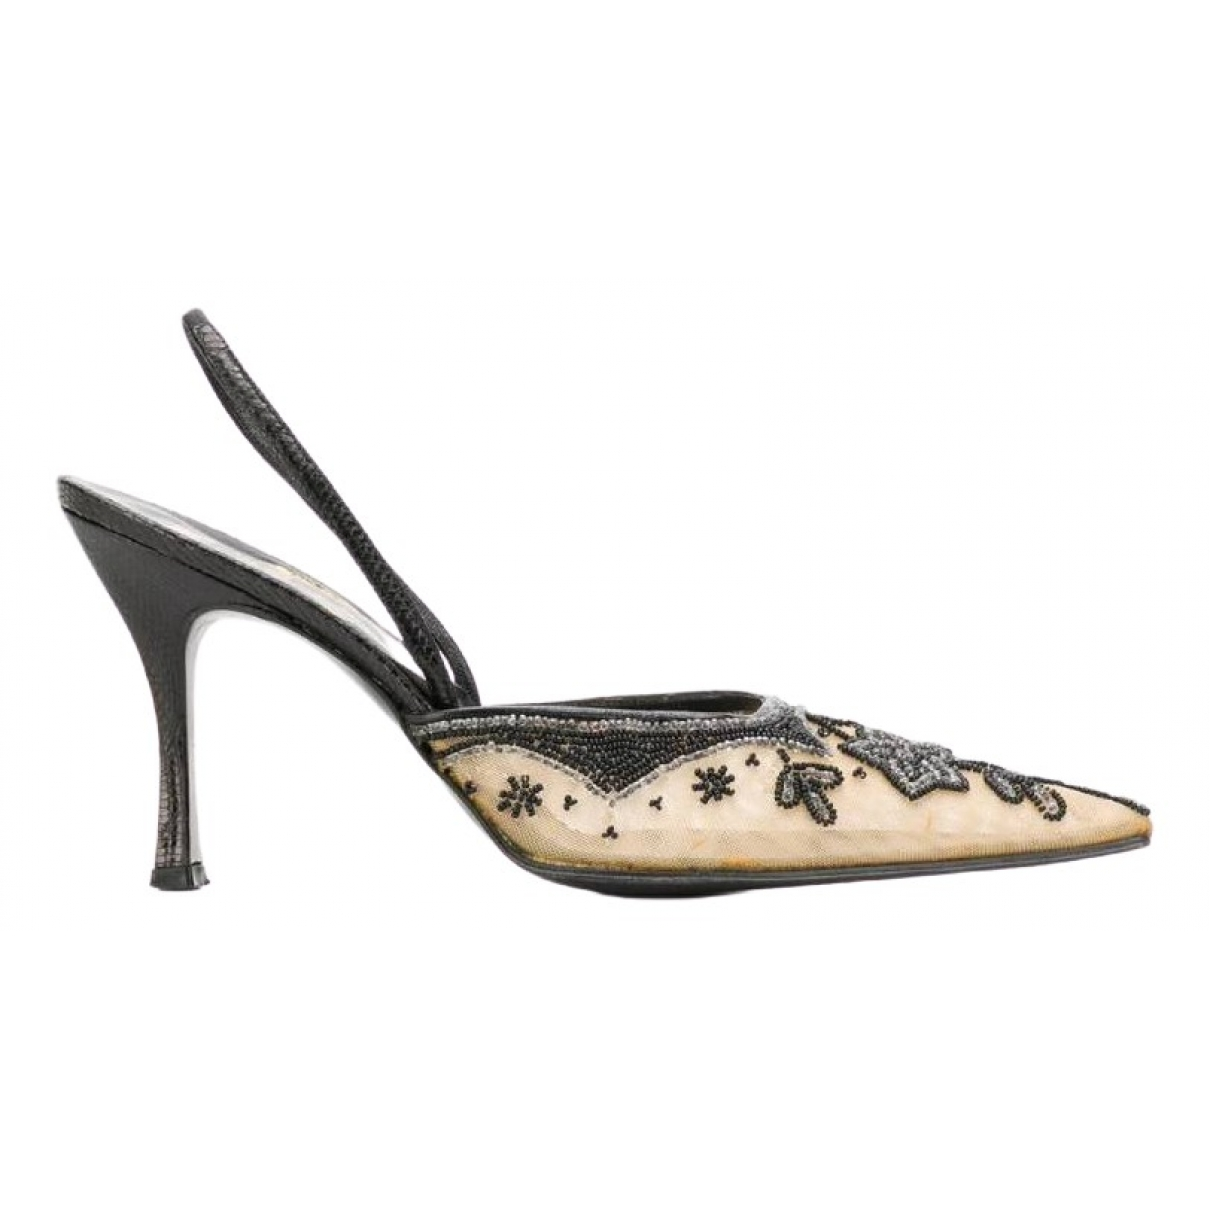 Rene Caovilla \N Beige Leather Heels for Women 37 IT